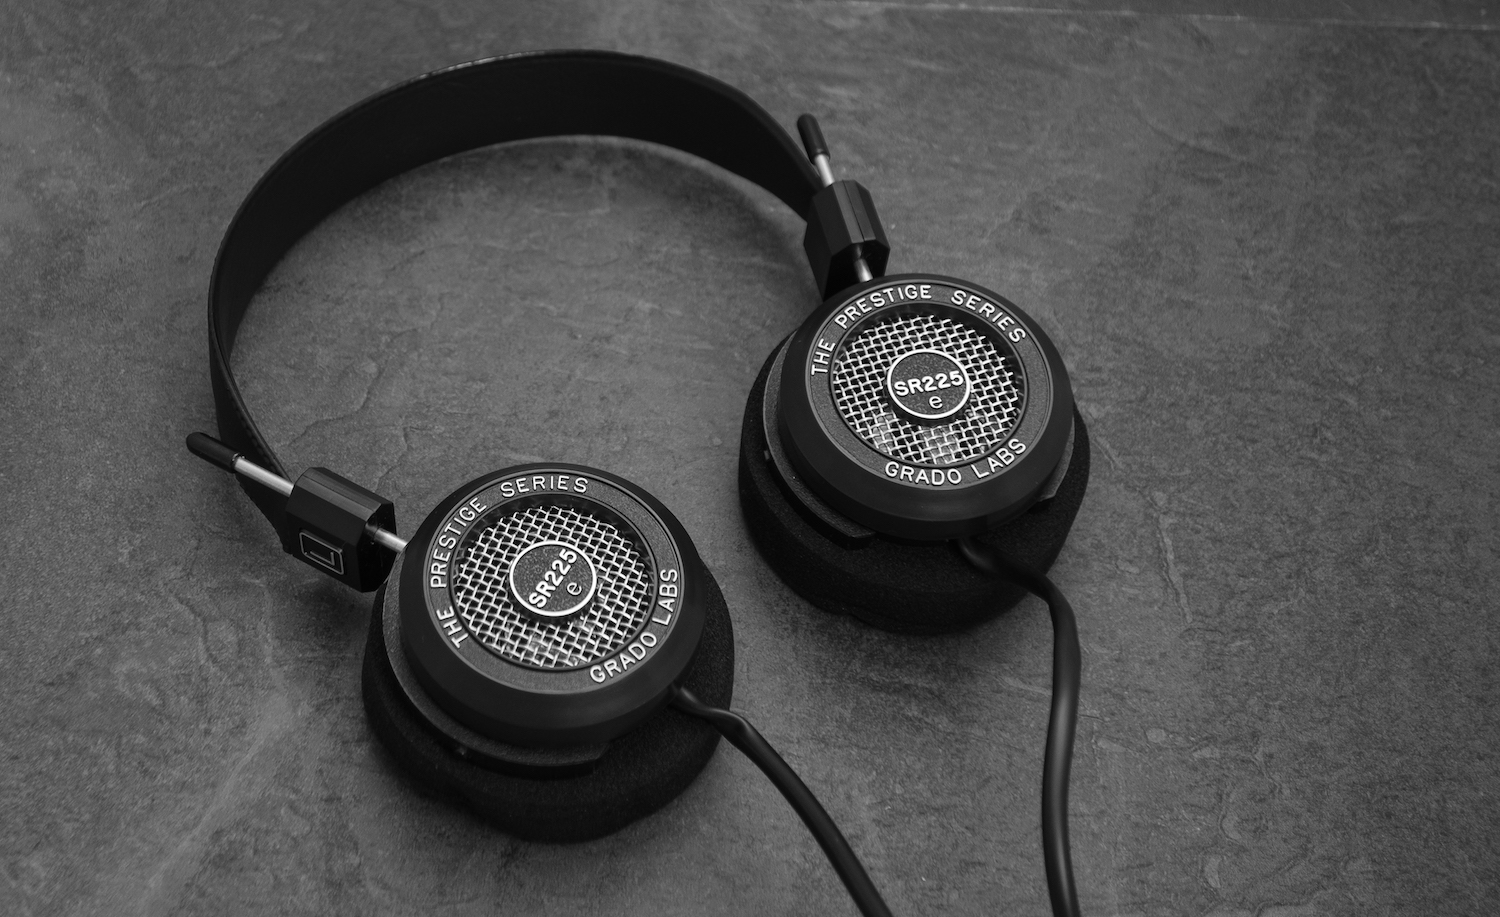 Same classic / iconic headphone design.